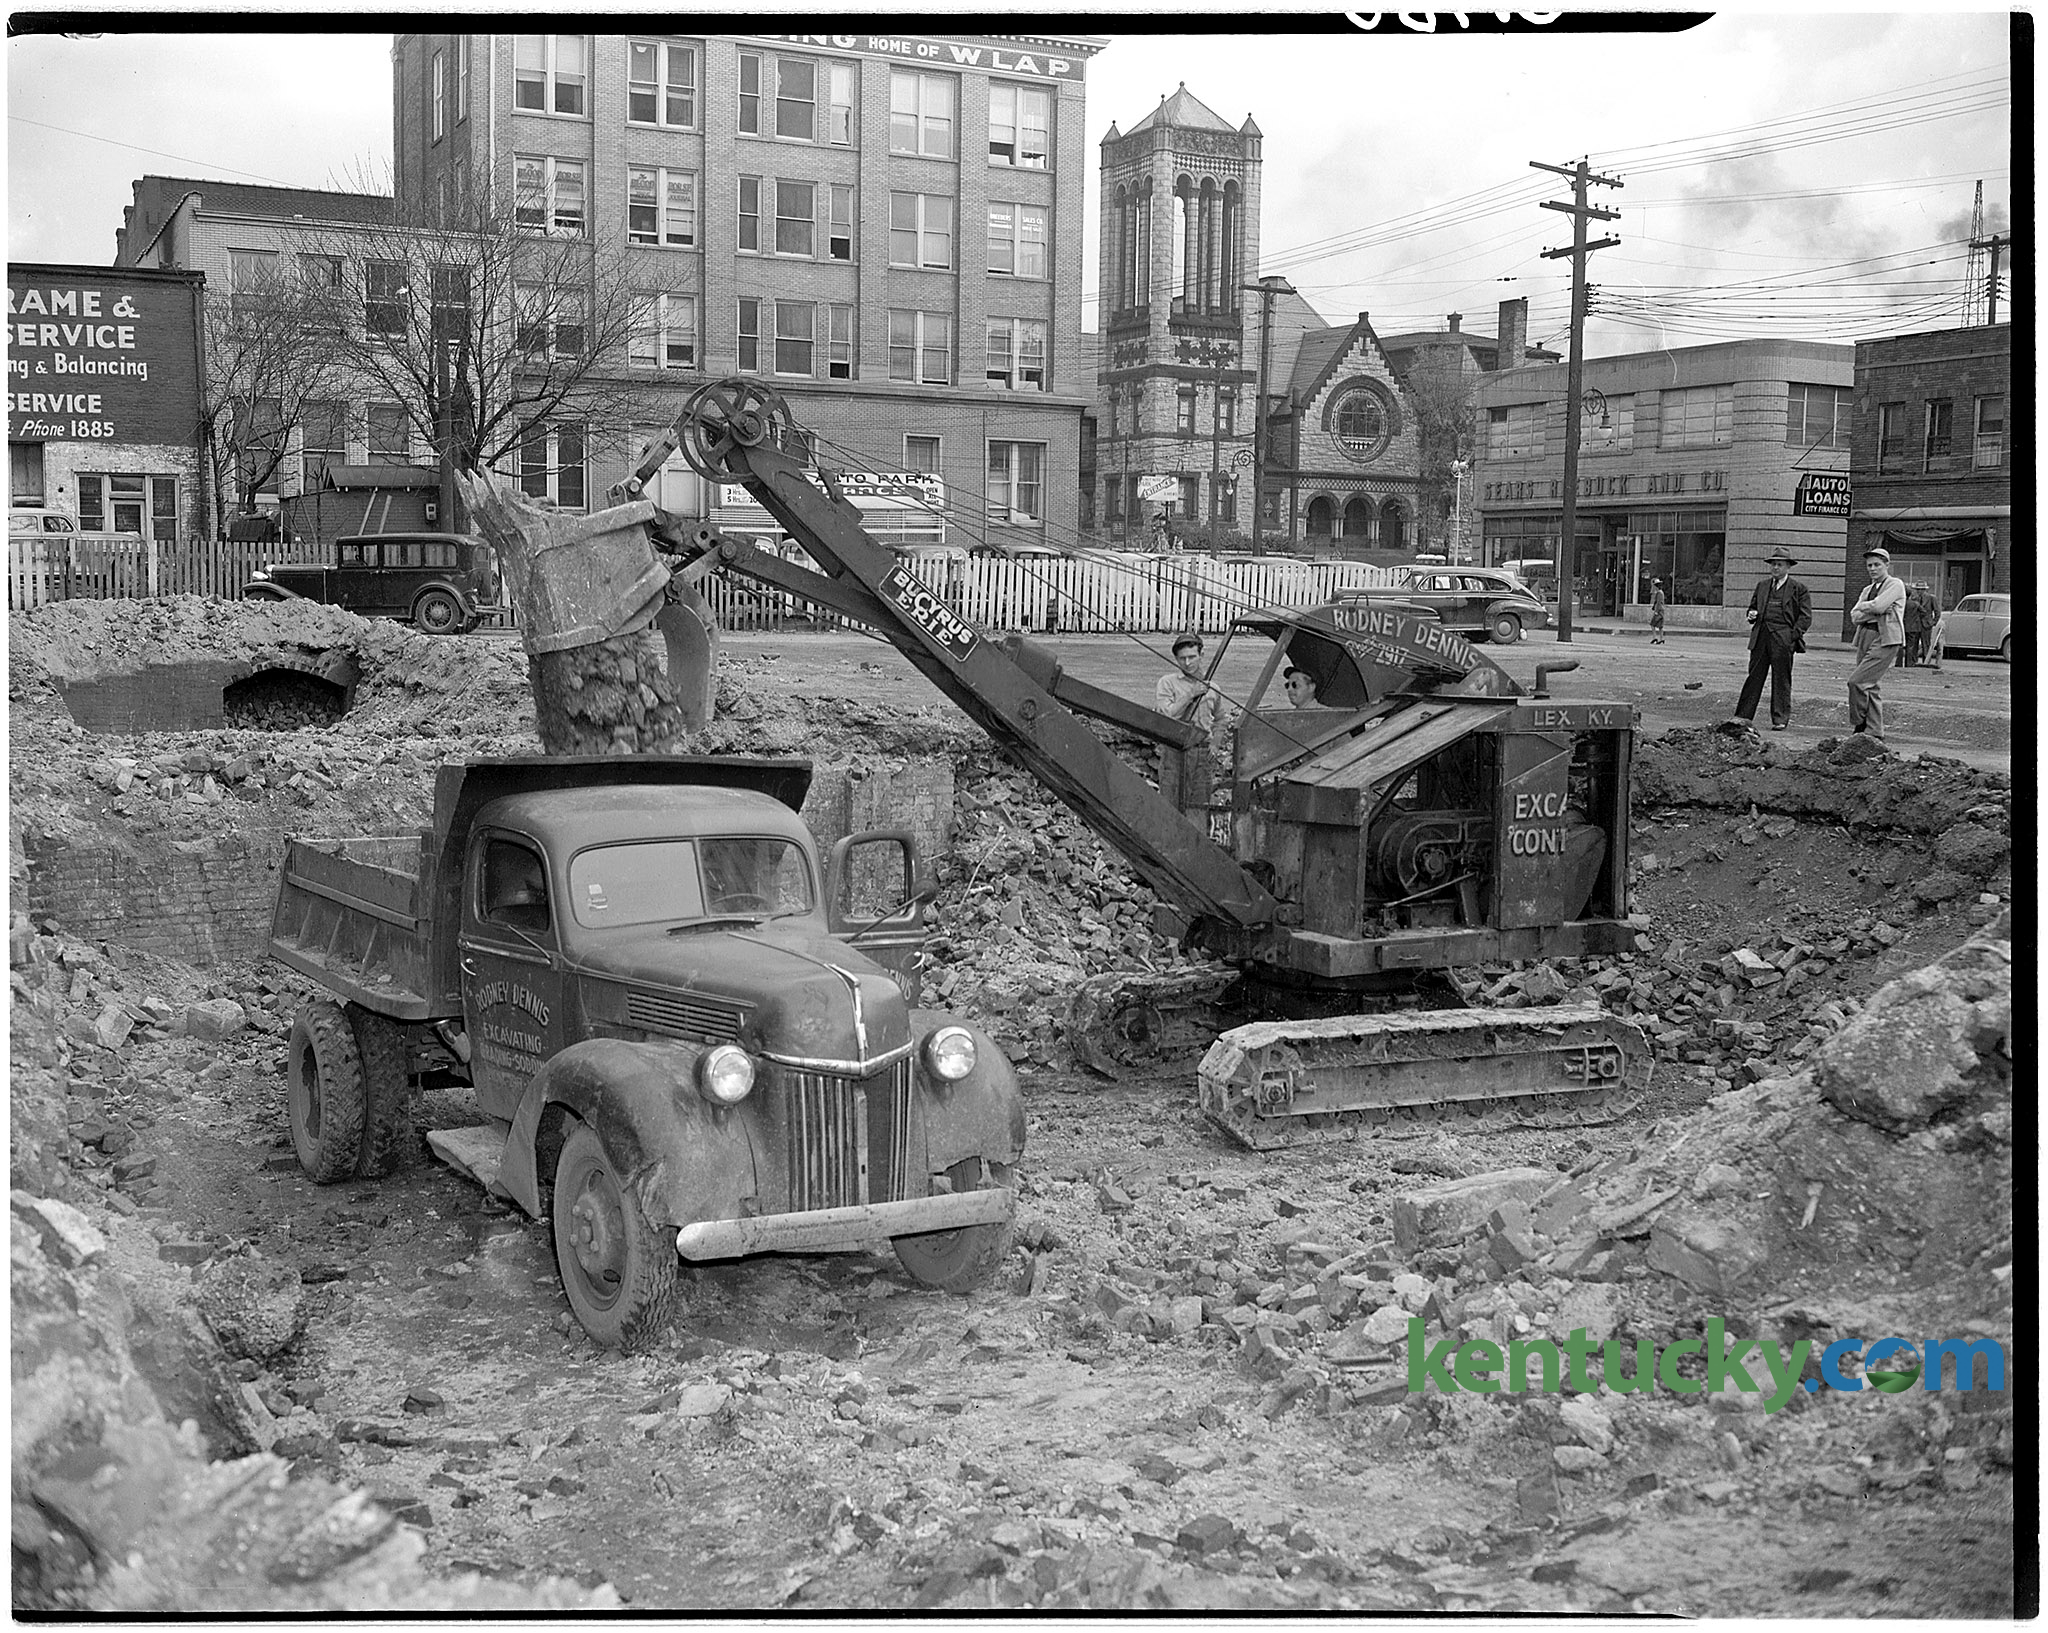 Excavation site in downtown Lexington, 1946 | Kentucky Photo Archive